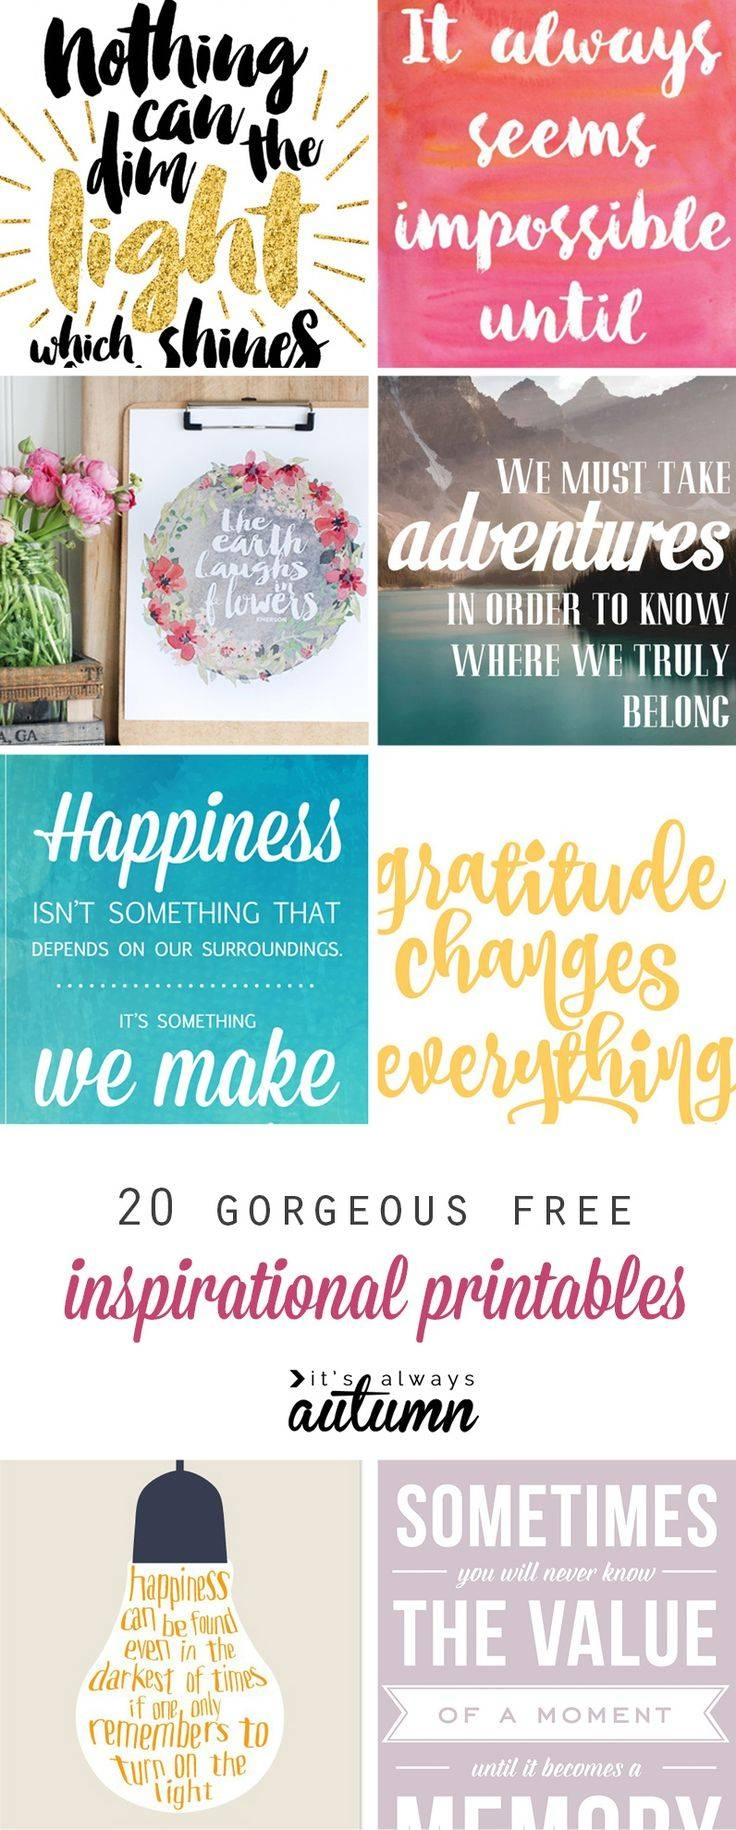 Best 25+ Office Wall Art Ideas On Pinterest | Office Wall Design Pertaining To Current Inspirational Wall Art For Office (View 13 of 20)